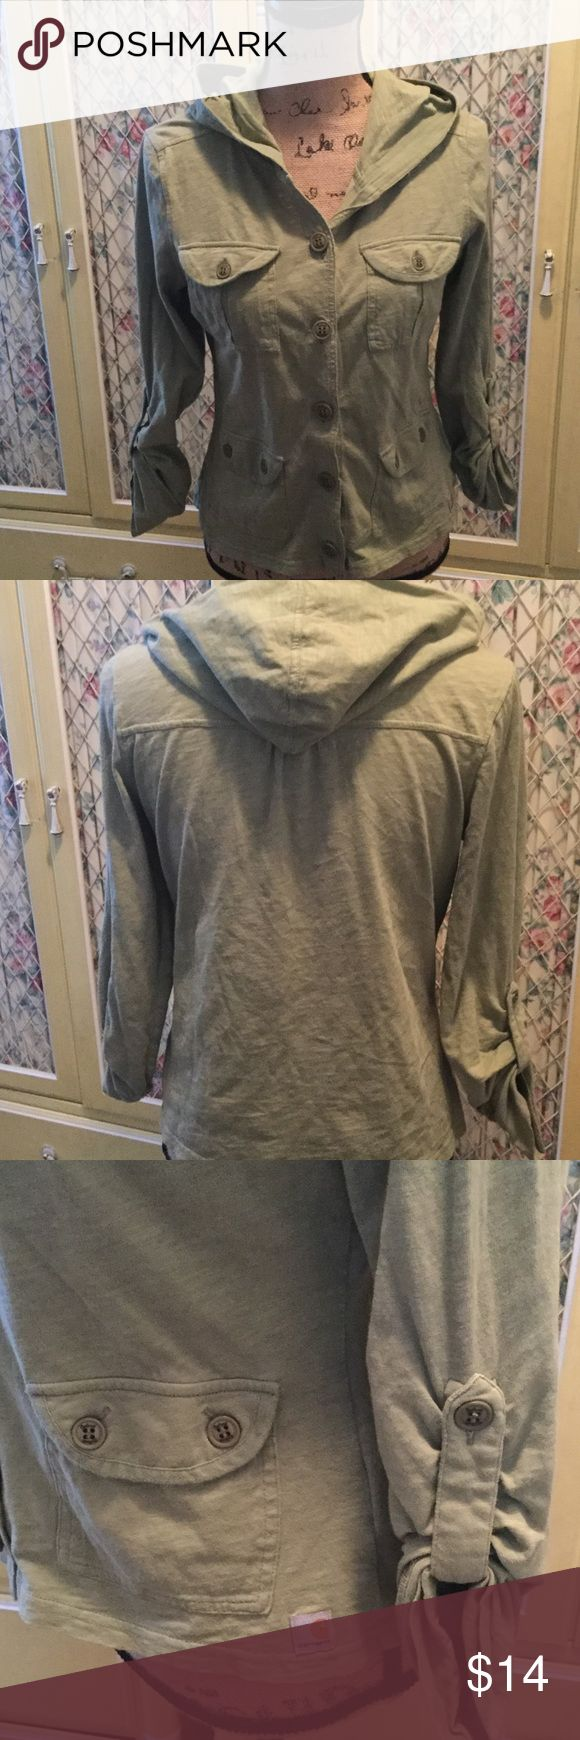 Carhartt hooded cotton field jacket S Cute olive green button down jersey field jacket.  Long sleeves can be gathered into attached strap and buttoned up.  4 pockets on front.  Lightweight, great layer for spring.  Excellent used condition. Carhartt Tops Button Down Shirts